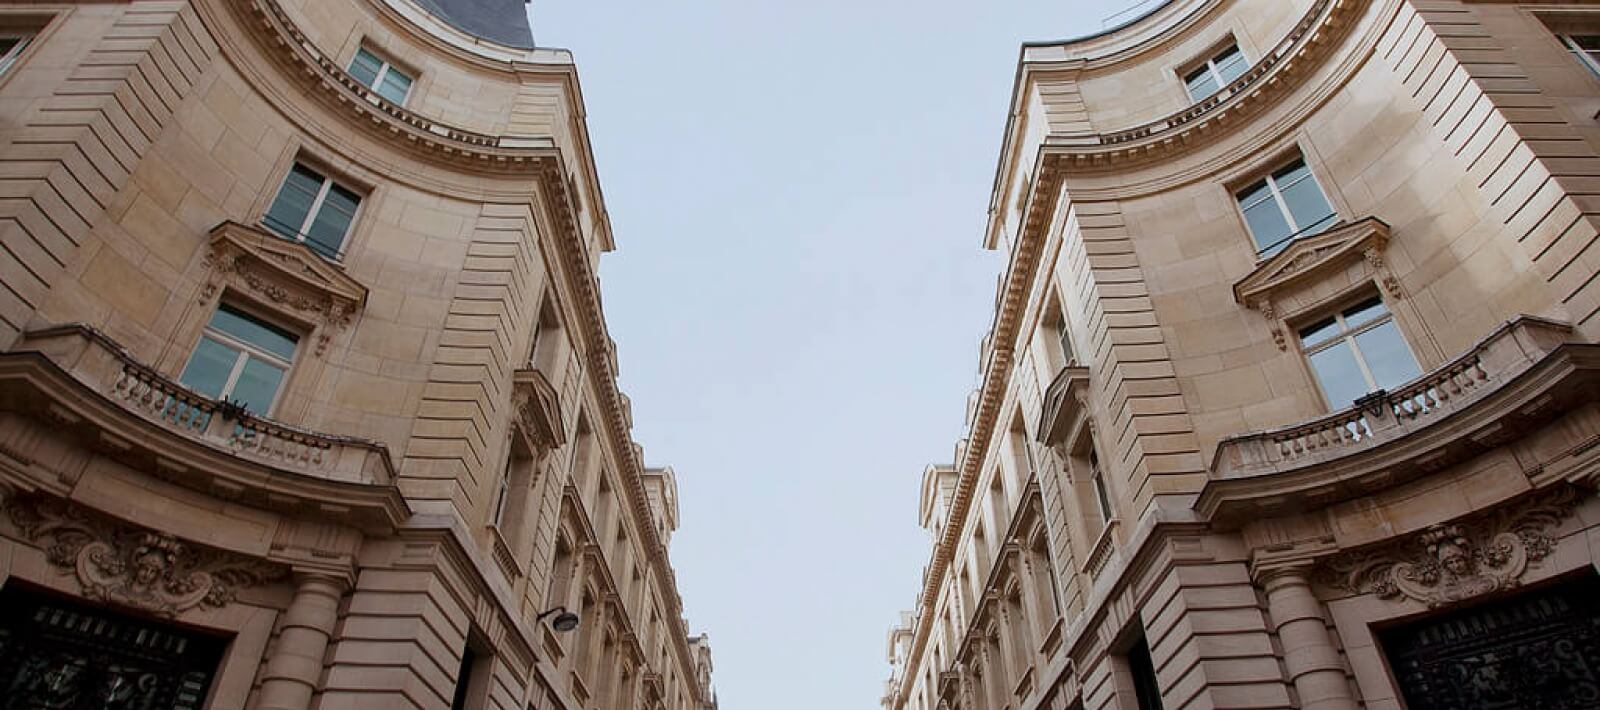 Bourse ou immobilier : quel placement en 2020 ?